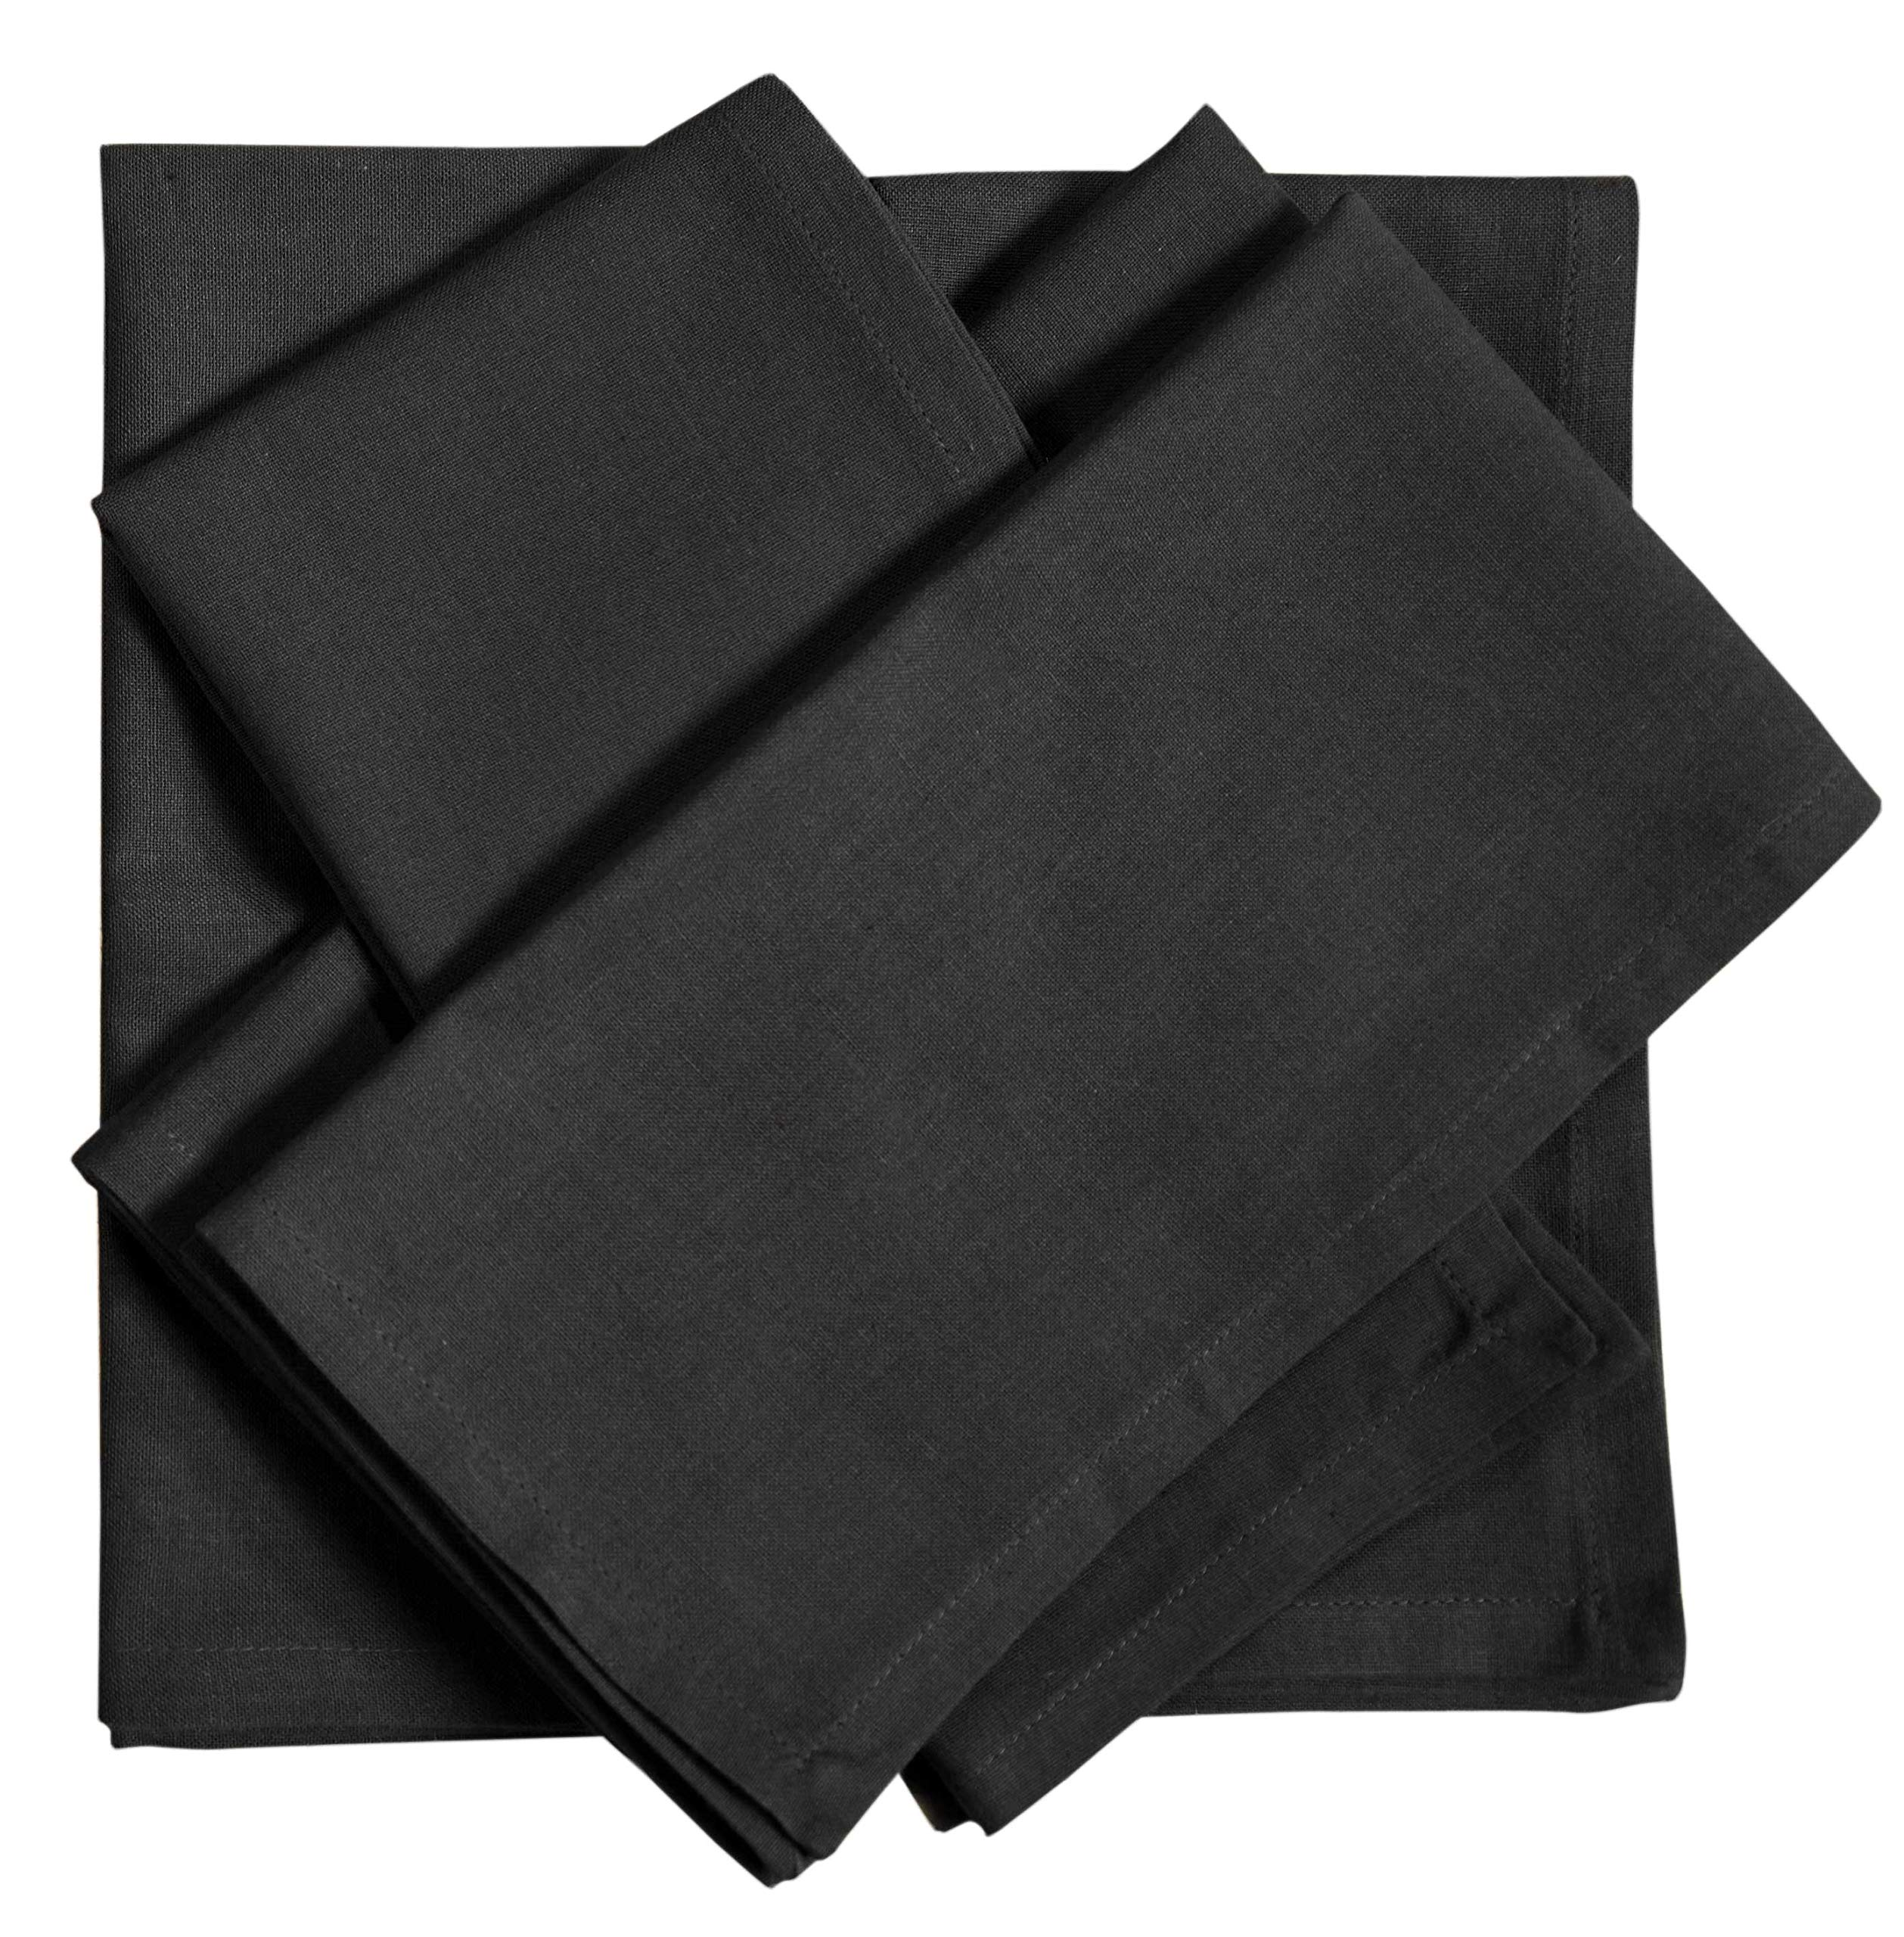 Pack of 12 Pieces,100% Cellulose Cotton fibres,20'' Square, Oversize Solid Colored Dinner Napkin with Decorative selvage fold. By Linen Clubs (Black)